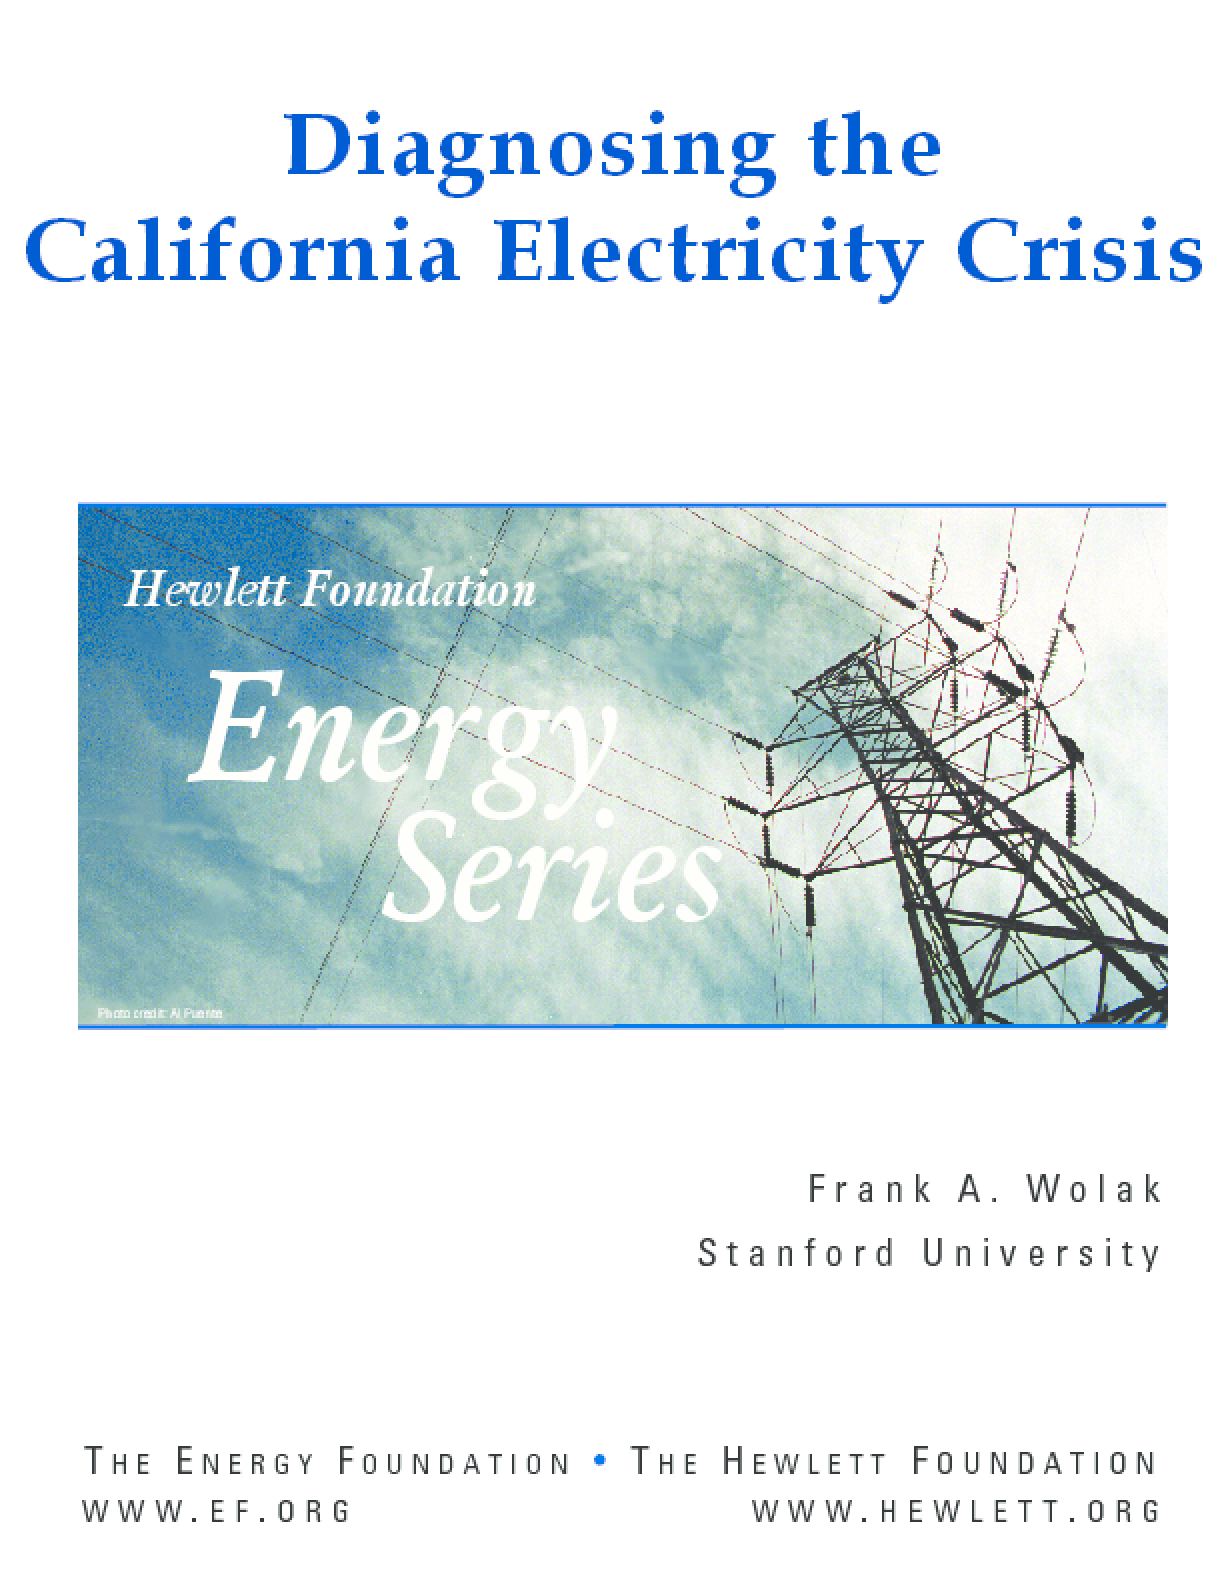 Diagnosing the California Electricity Crisis